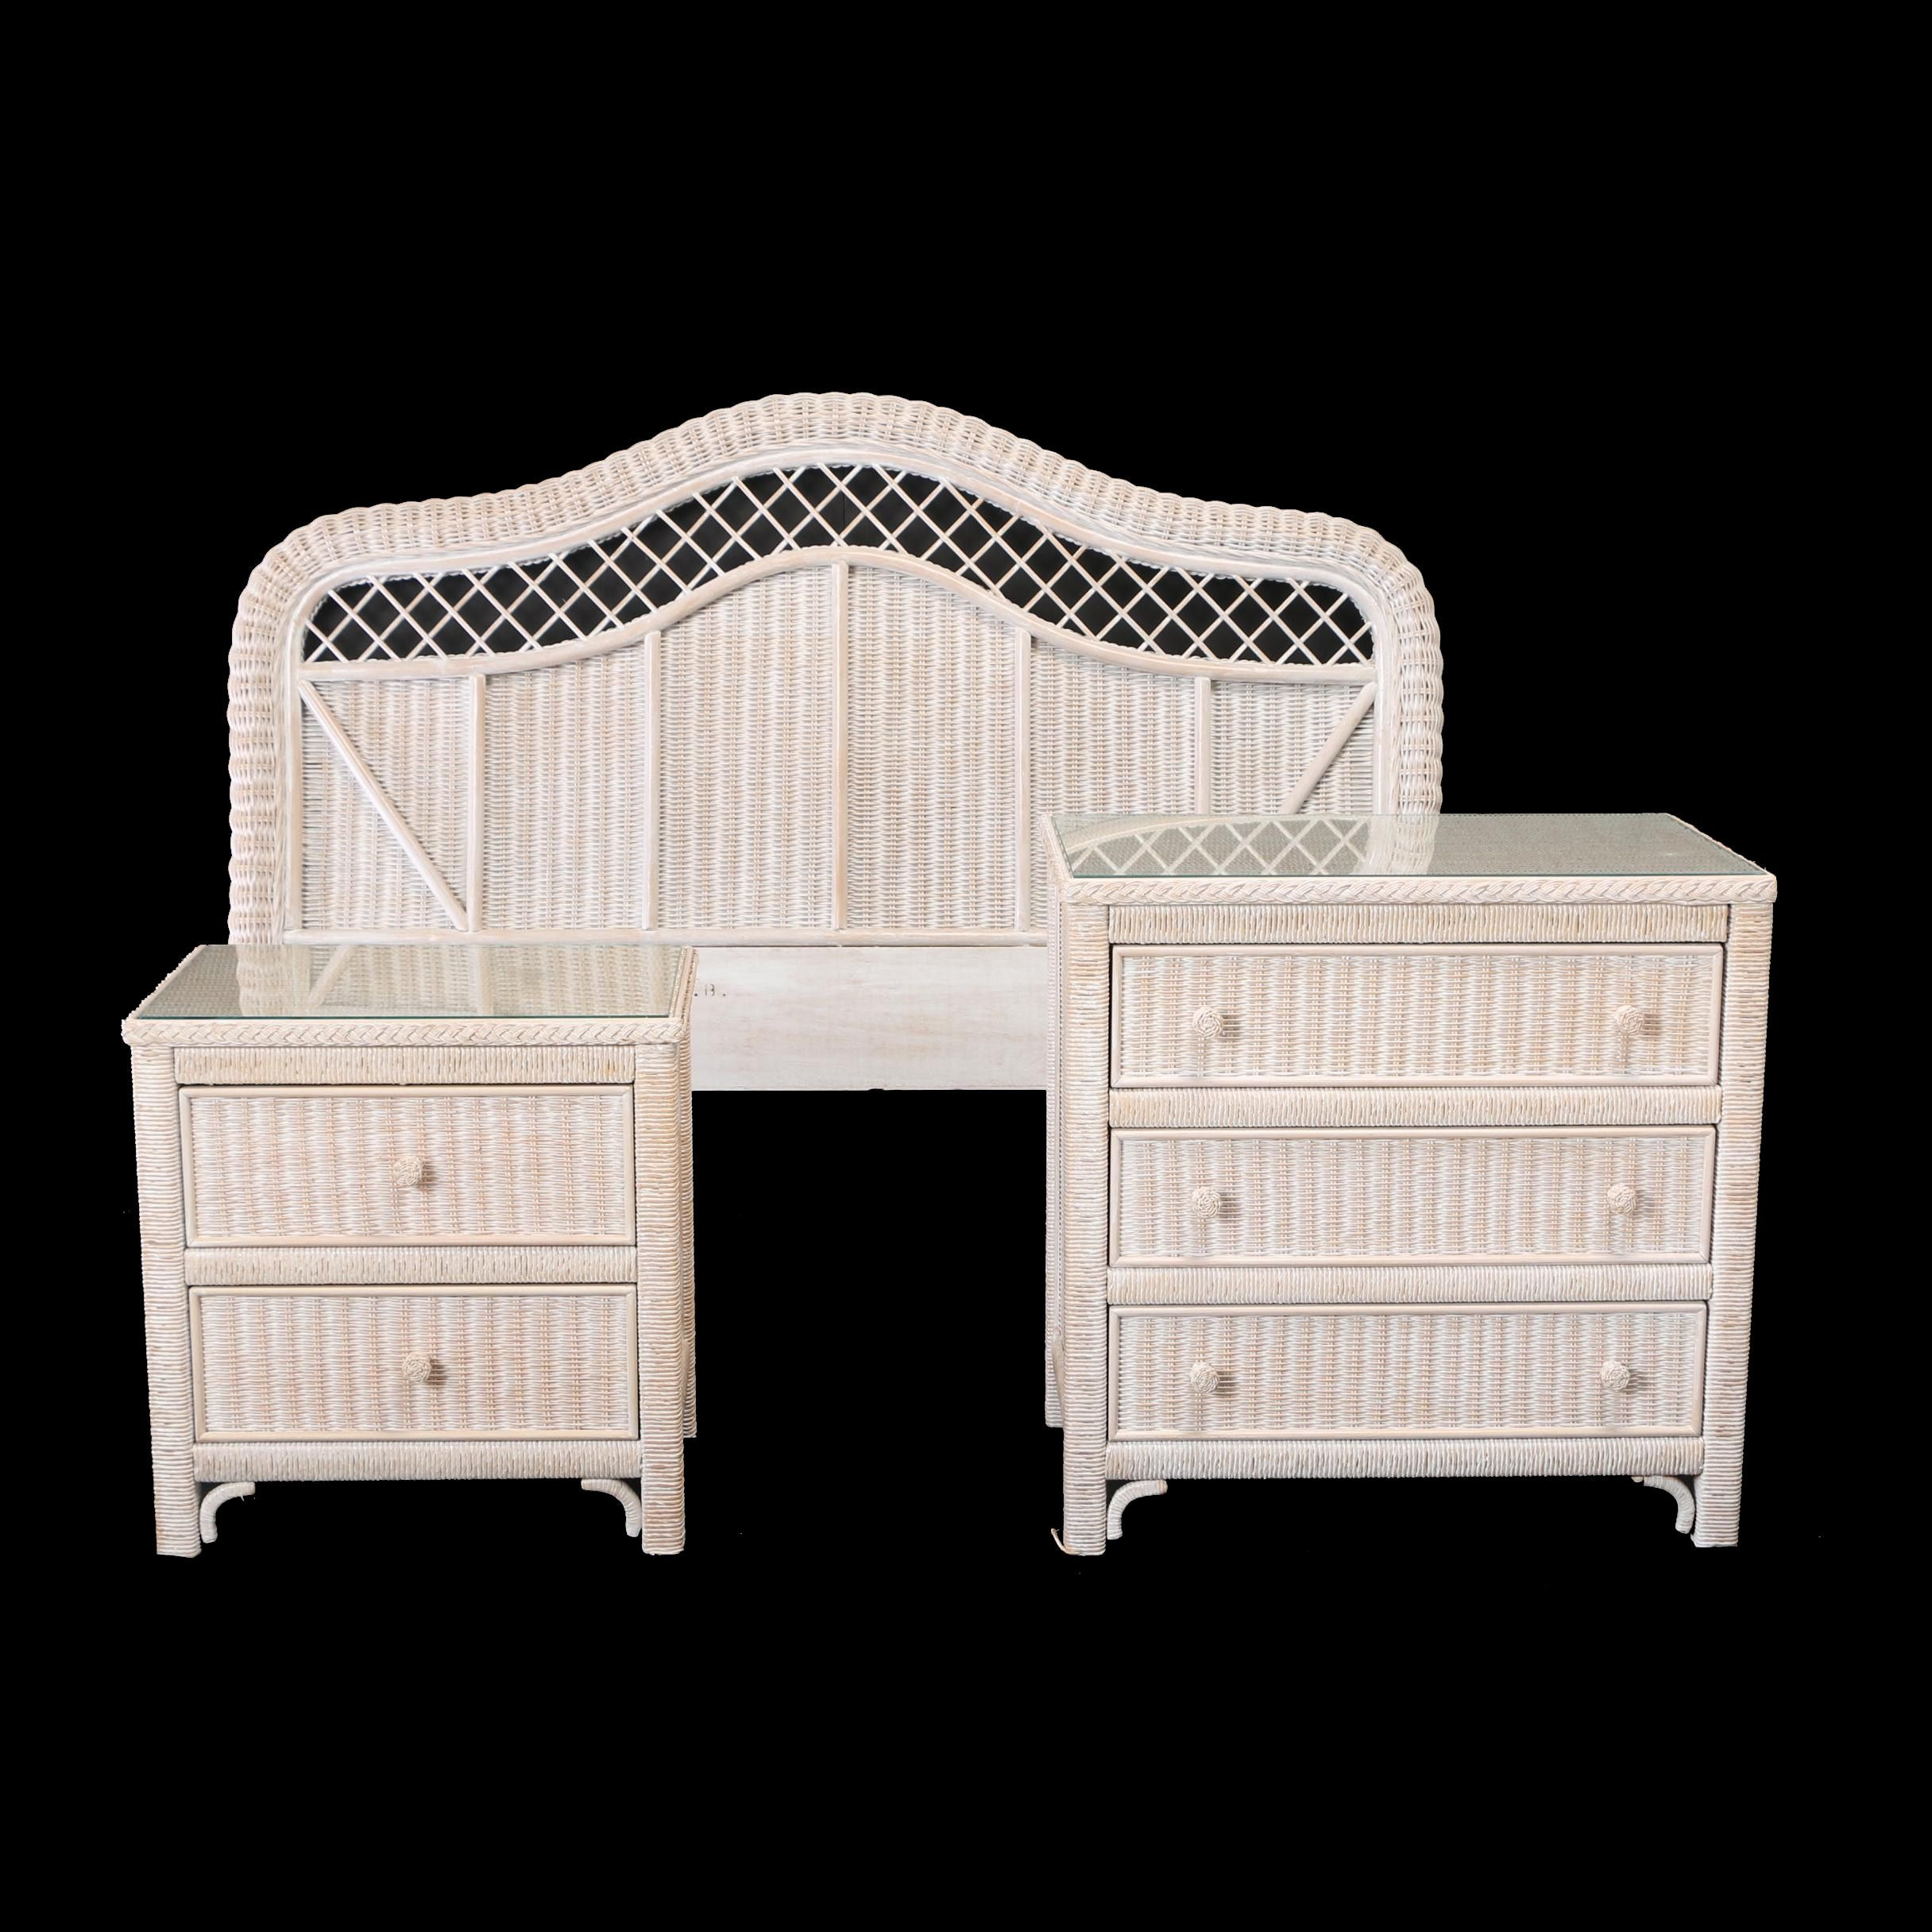 Contemporary Three-Piece Painted Wicker Bedroom Set by Henry Link for Lexington